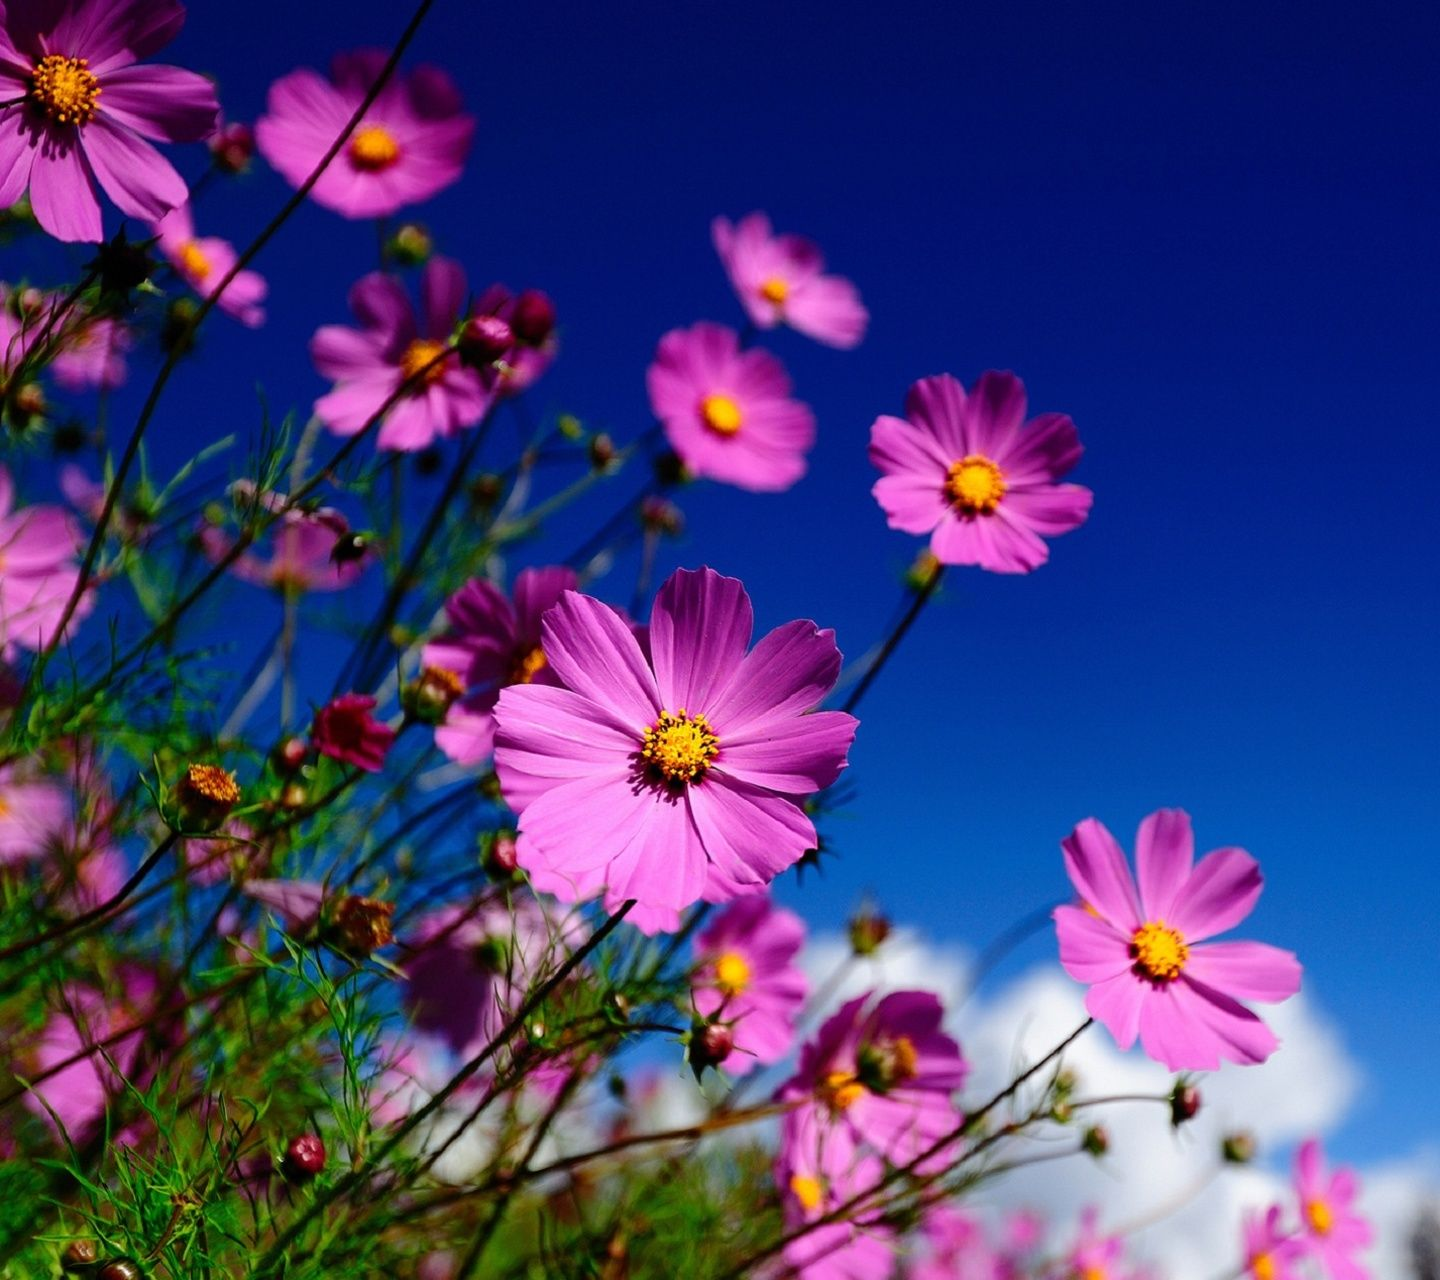 Flowers Wallpapers For Mobile Beautiful Flowers Images Cosmos Flowers Spring Flowers Wallpaper